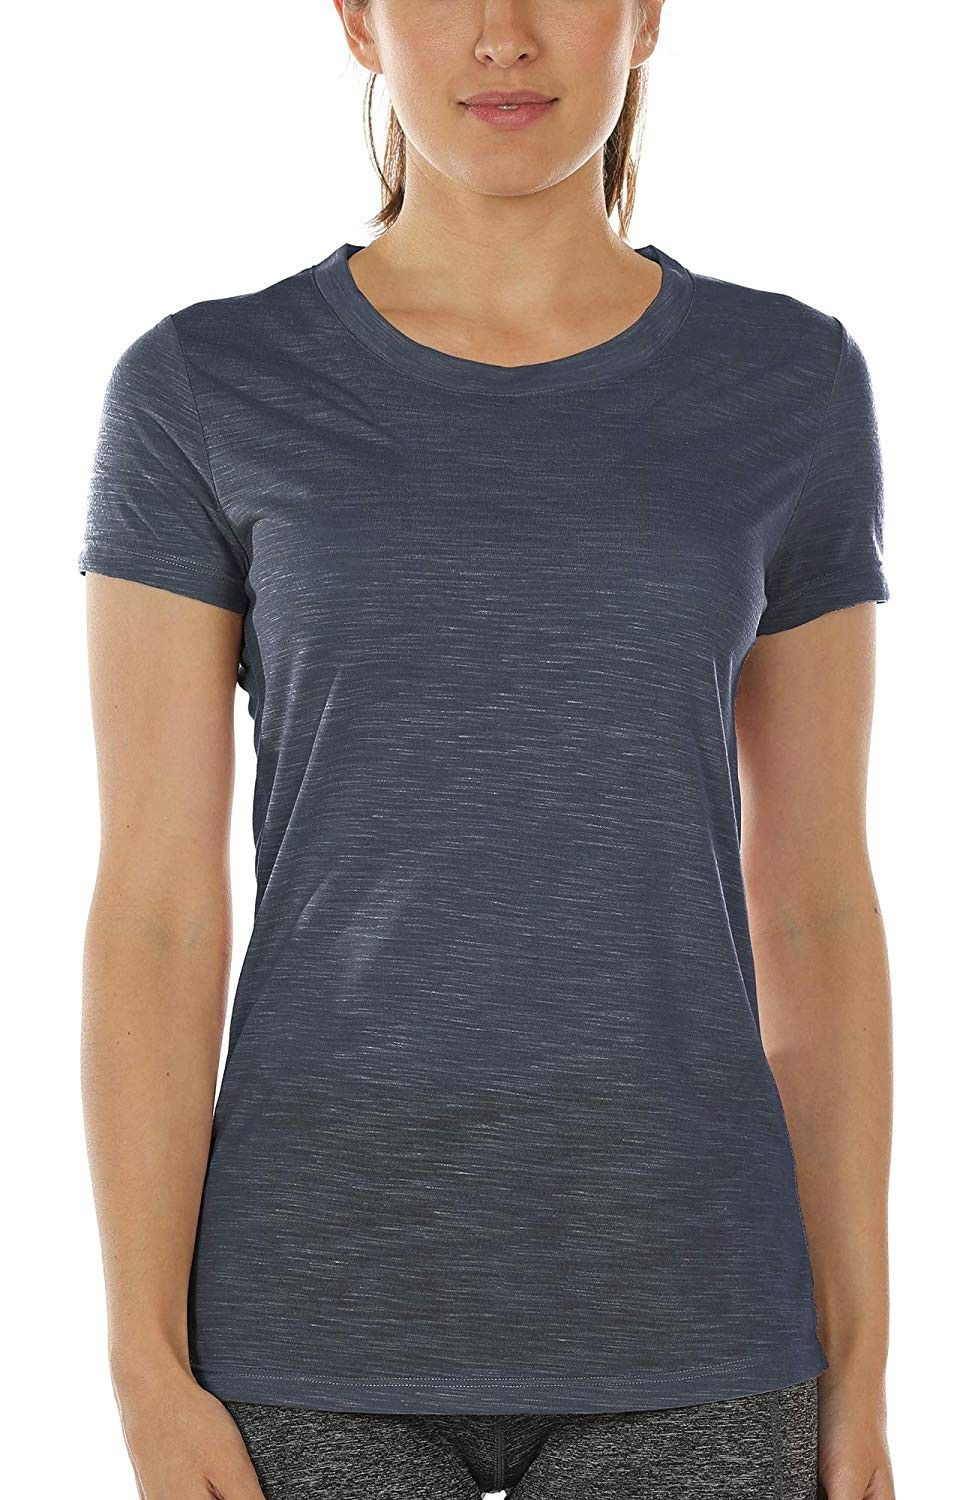 Workout Shirts for Women - Yoga Tops Gym Clothes Running Exercise Athletic T-Shirts for Women - Navy...